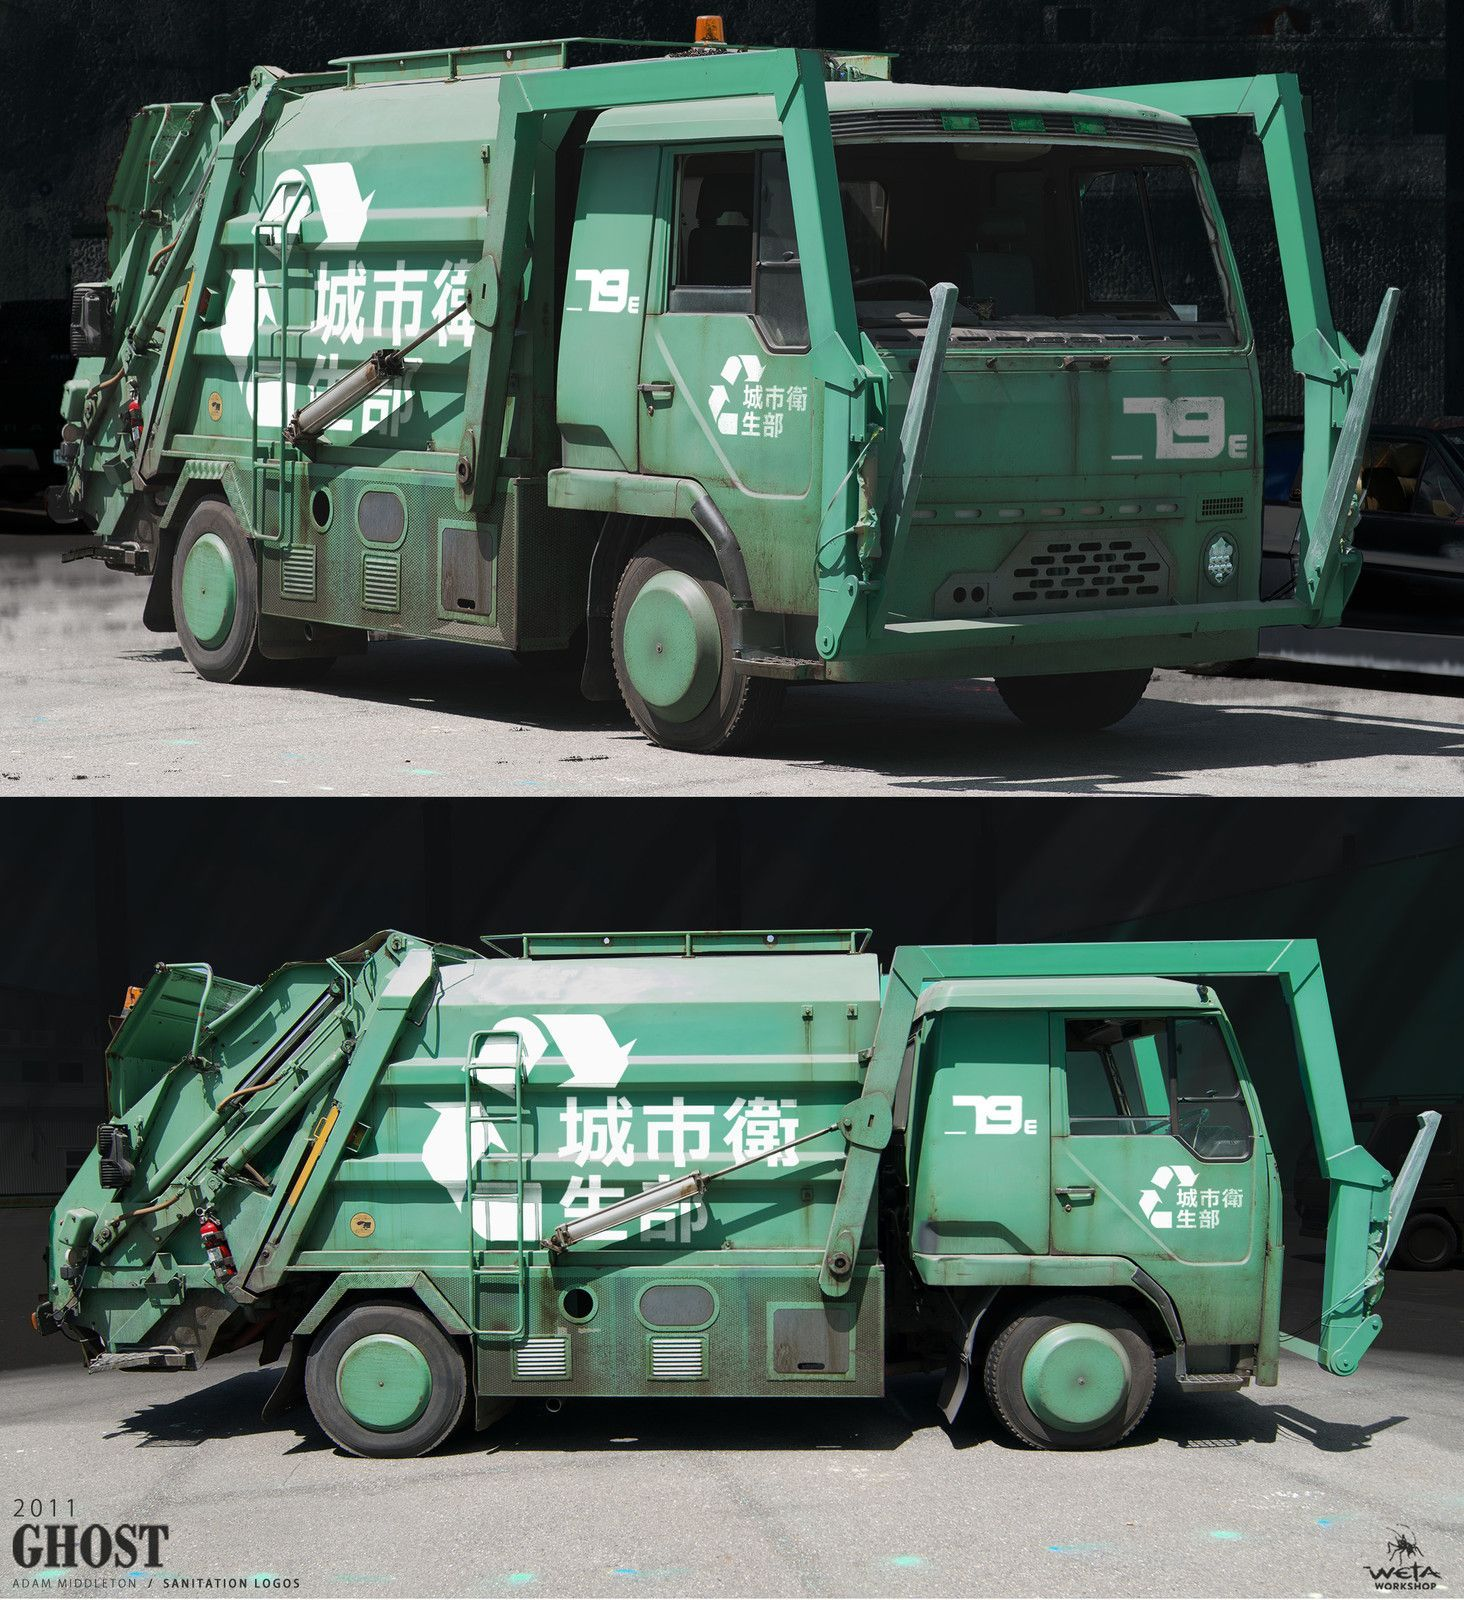 Ghost In The Shell Sanitation Truck Graphics Adam J Middleton